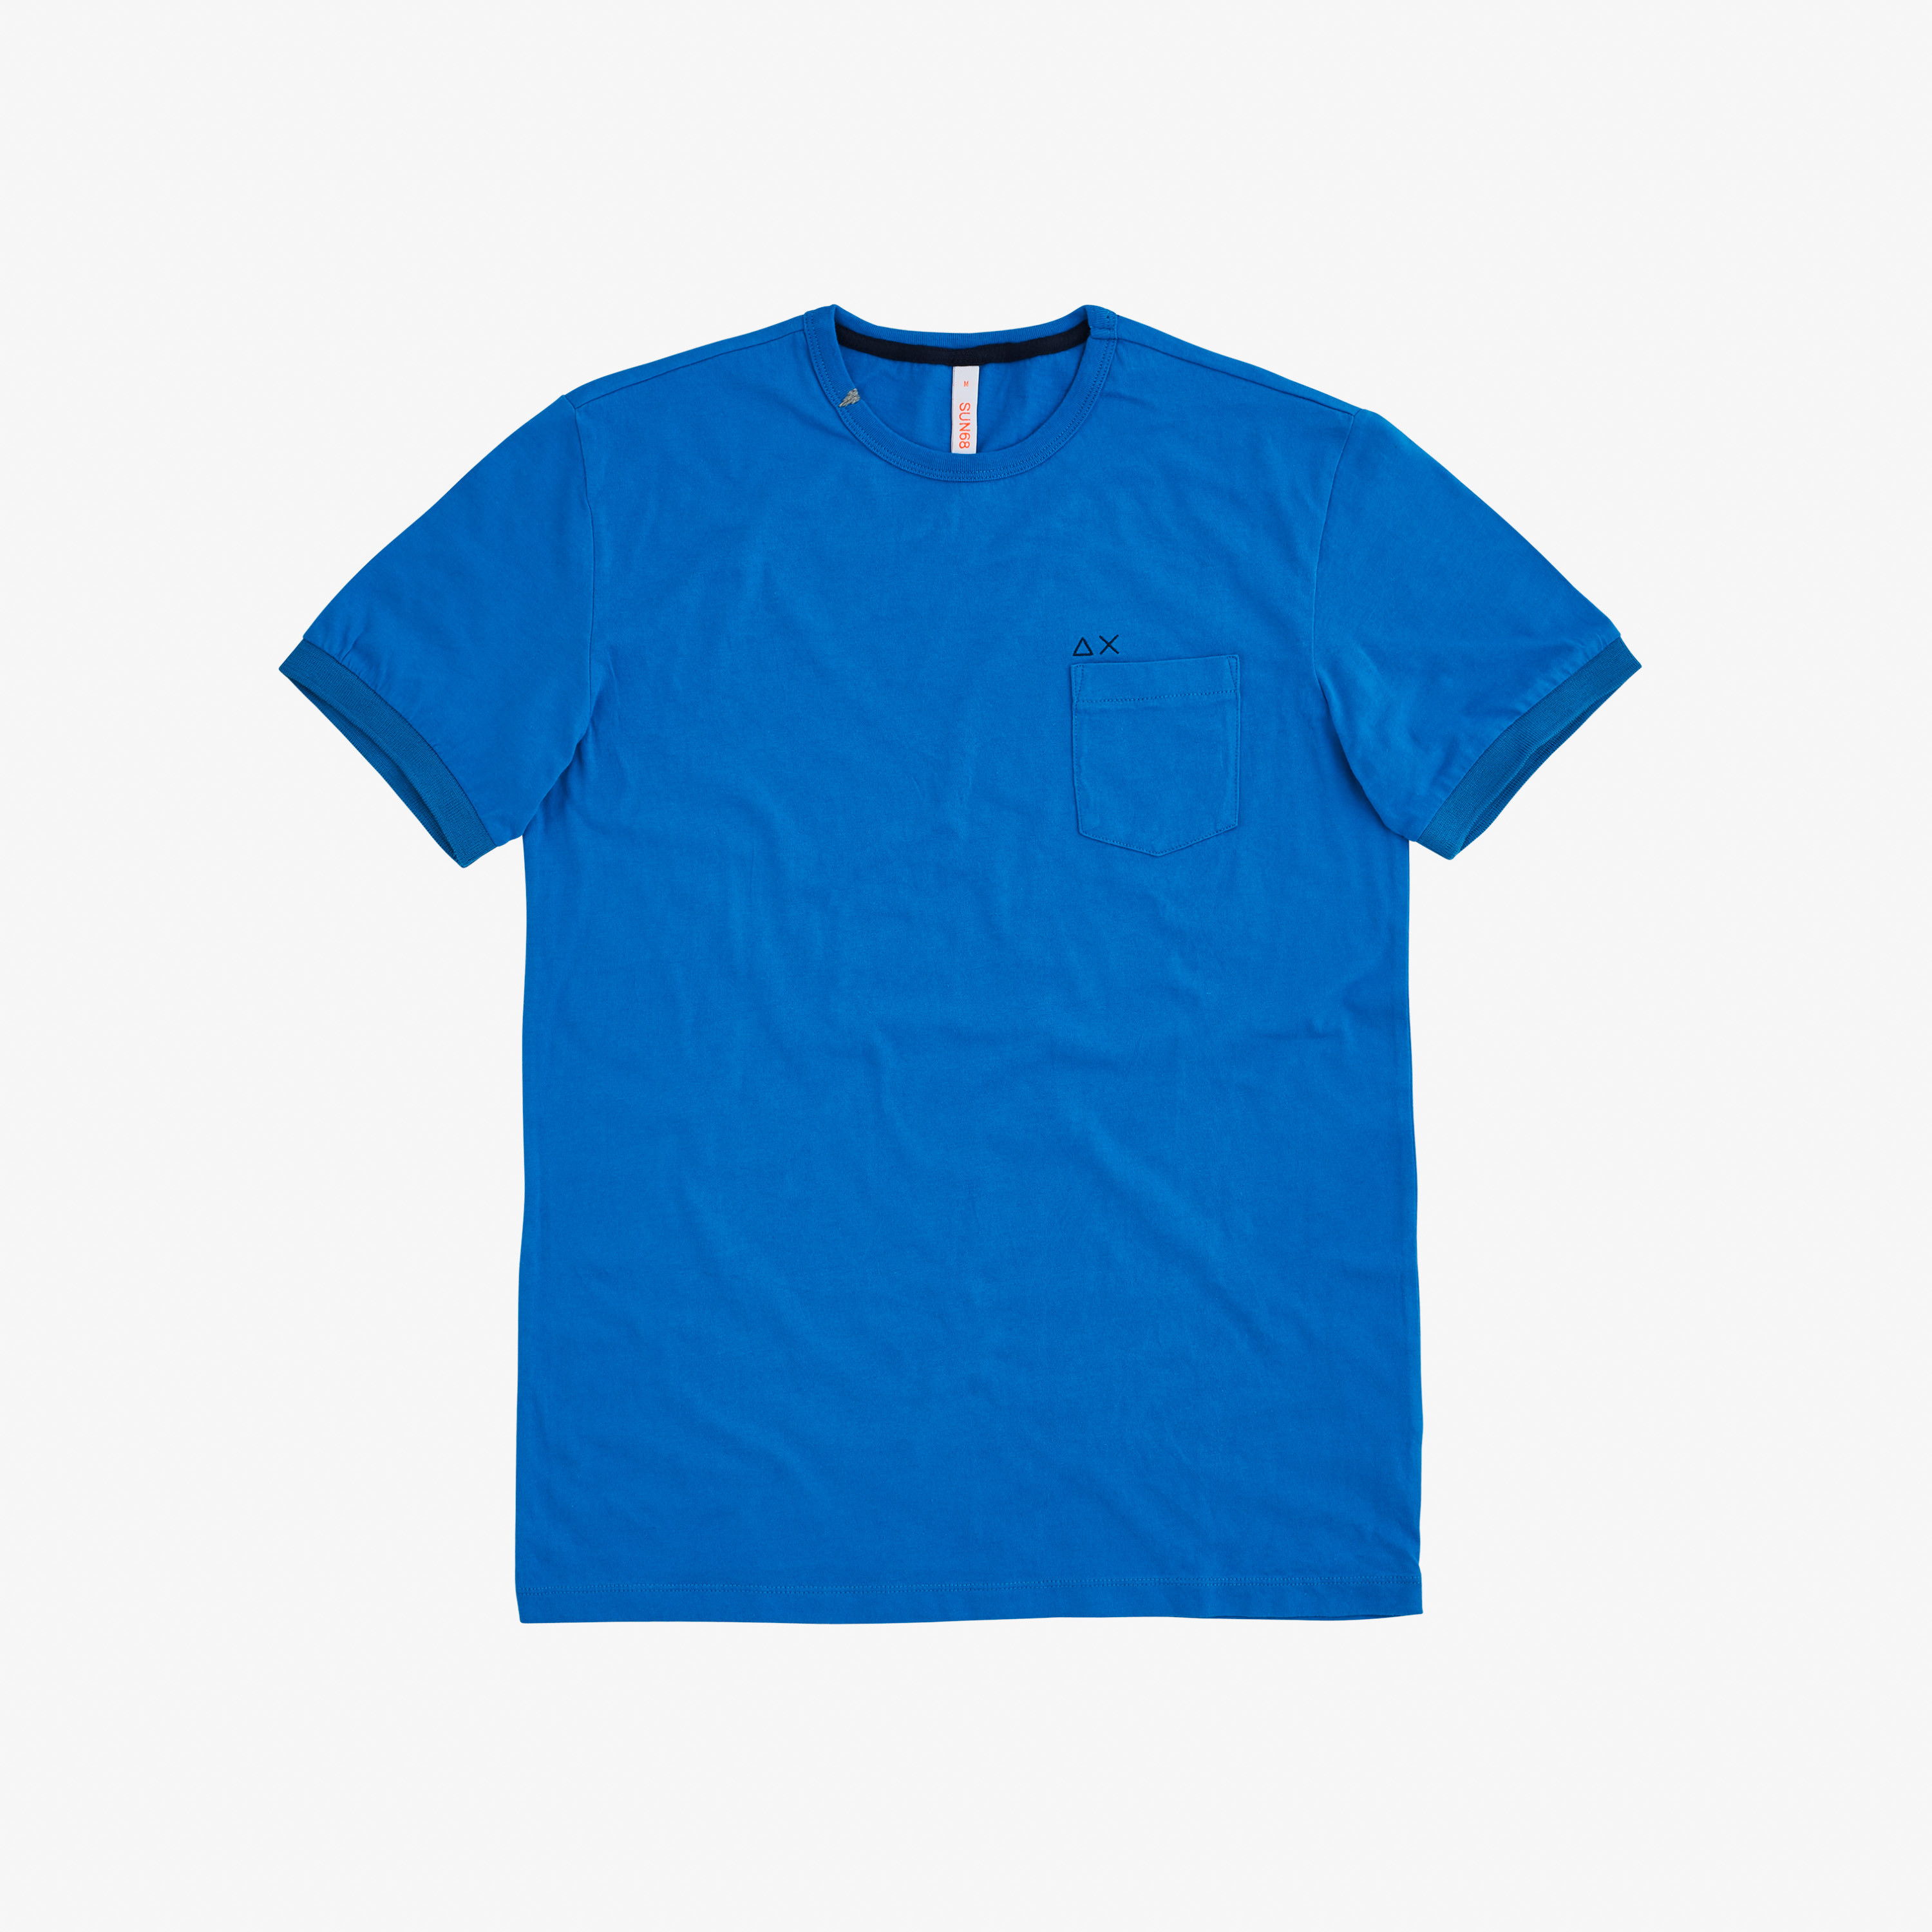 BOY'S T-SHIRT POCKET SOLID S/S TURQUOISE